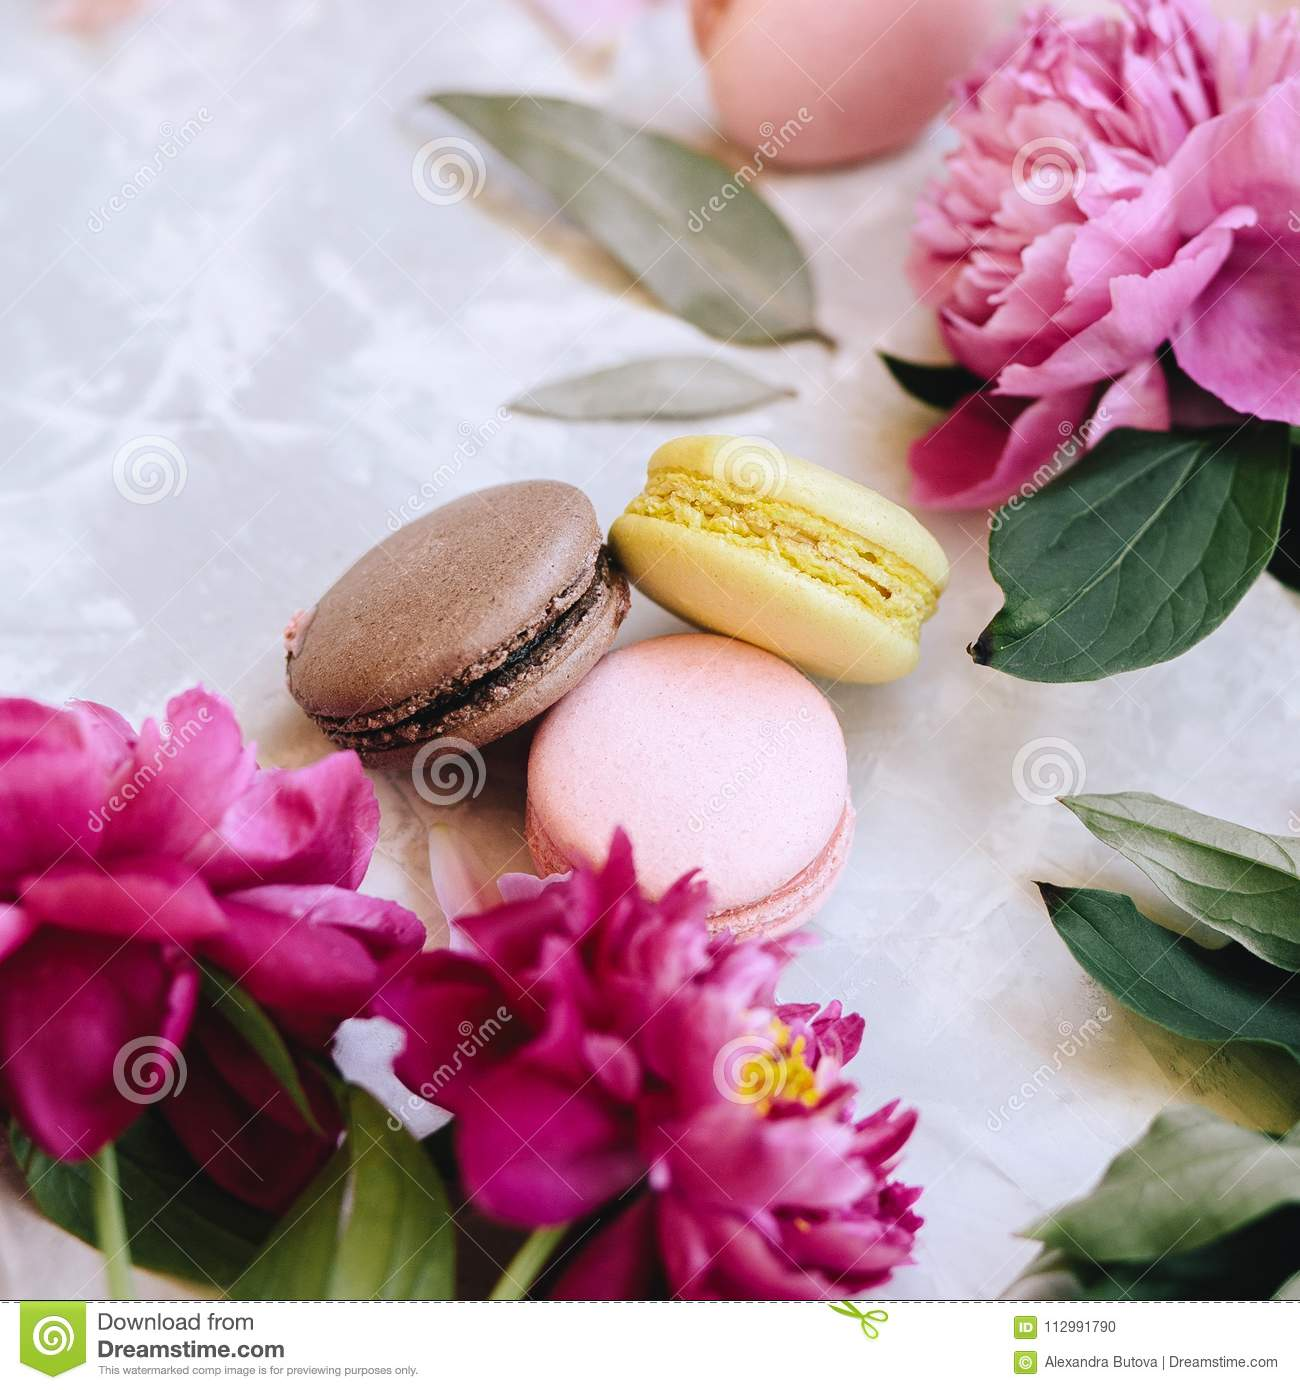 A composition of three multicolored macaroons and pink peony flowers. Close-up on a light background